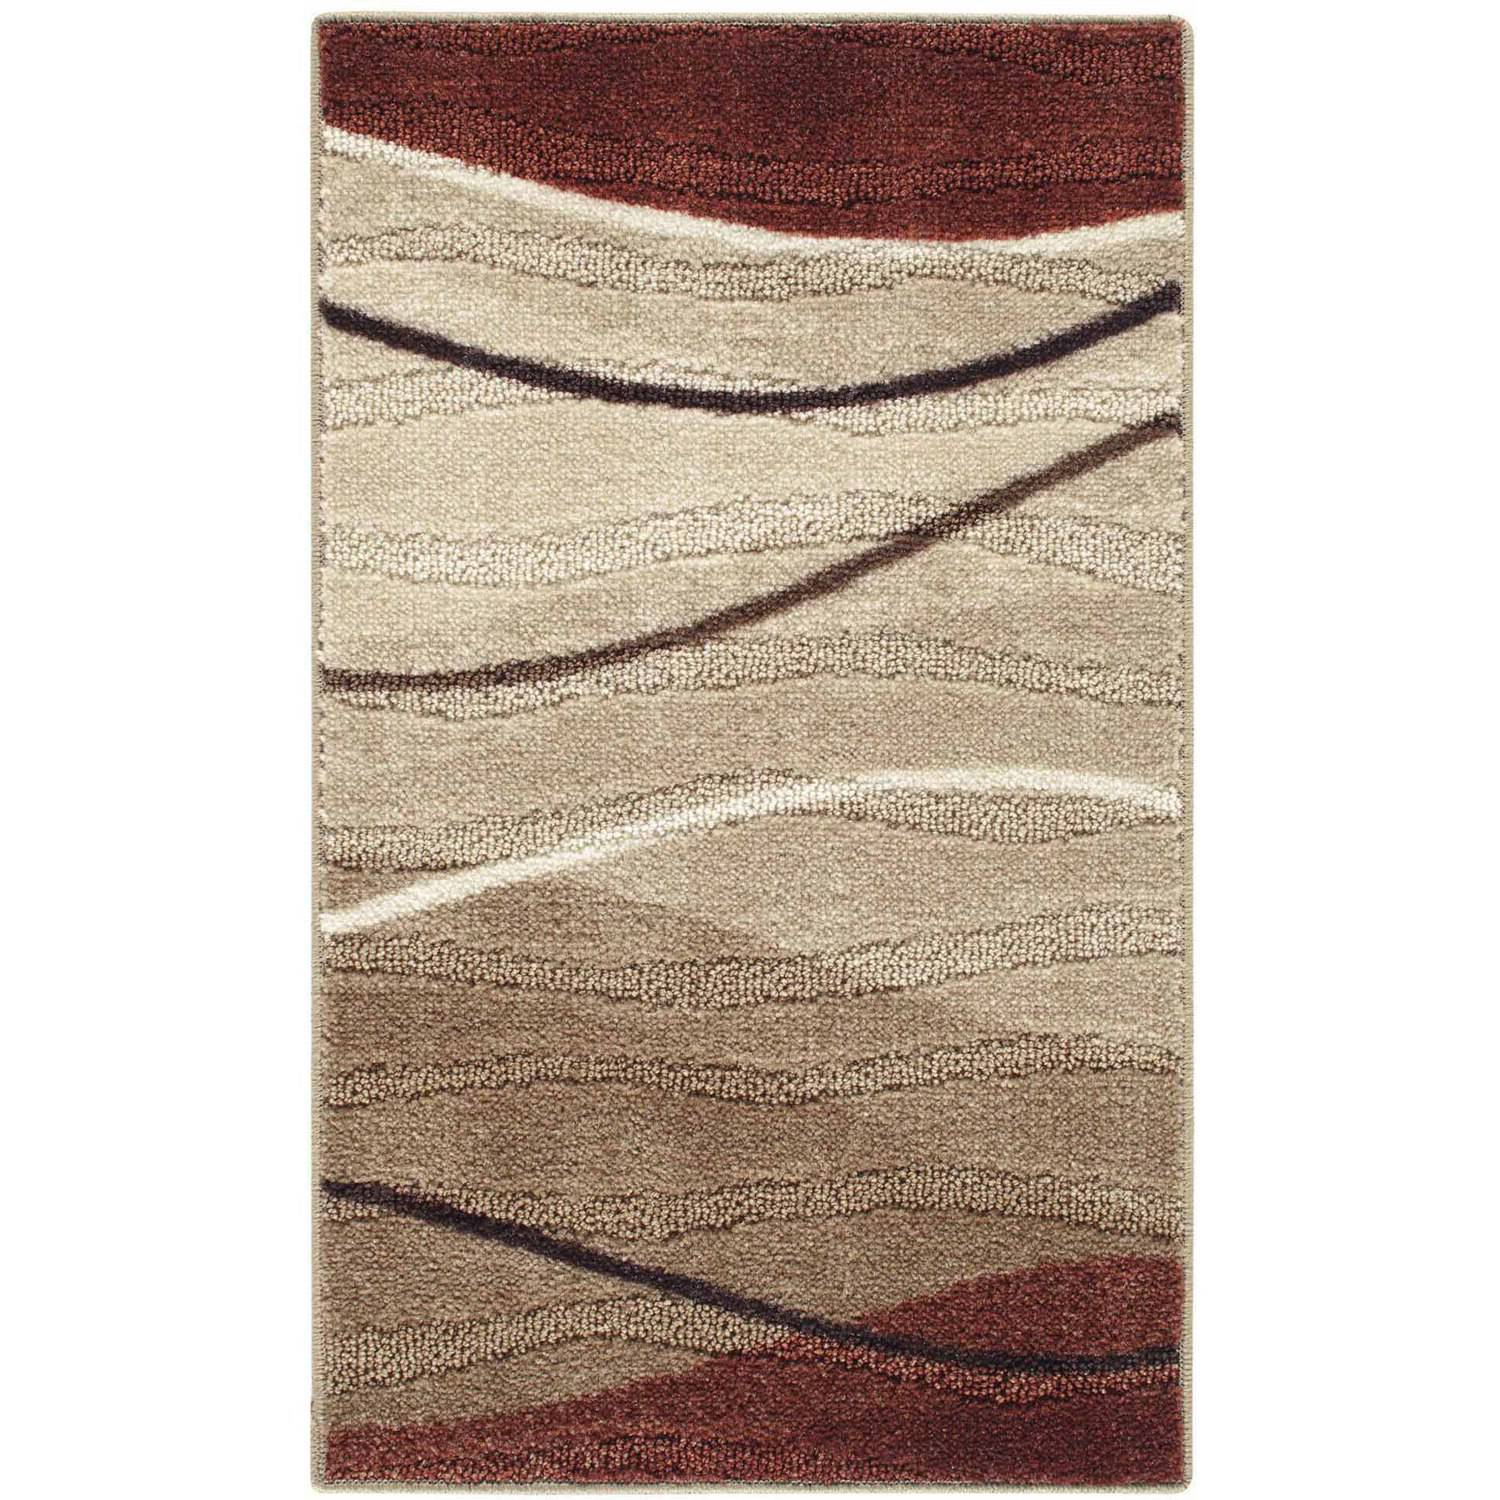 Better Homes&gardens Bhg 20x34 Waves Rust/tan Accent Rug